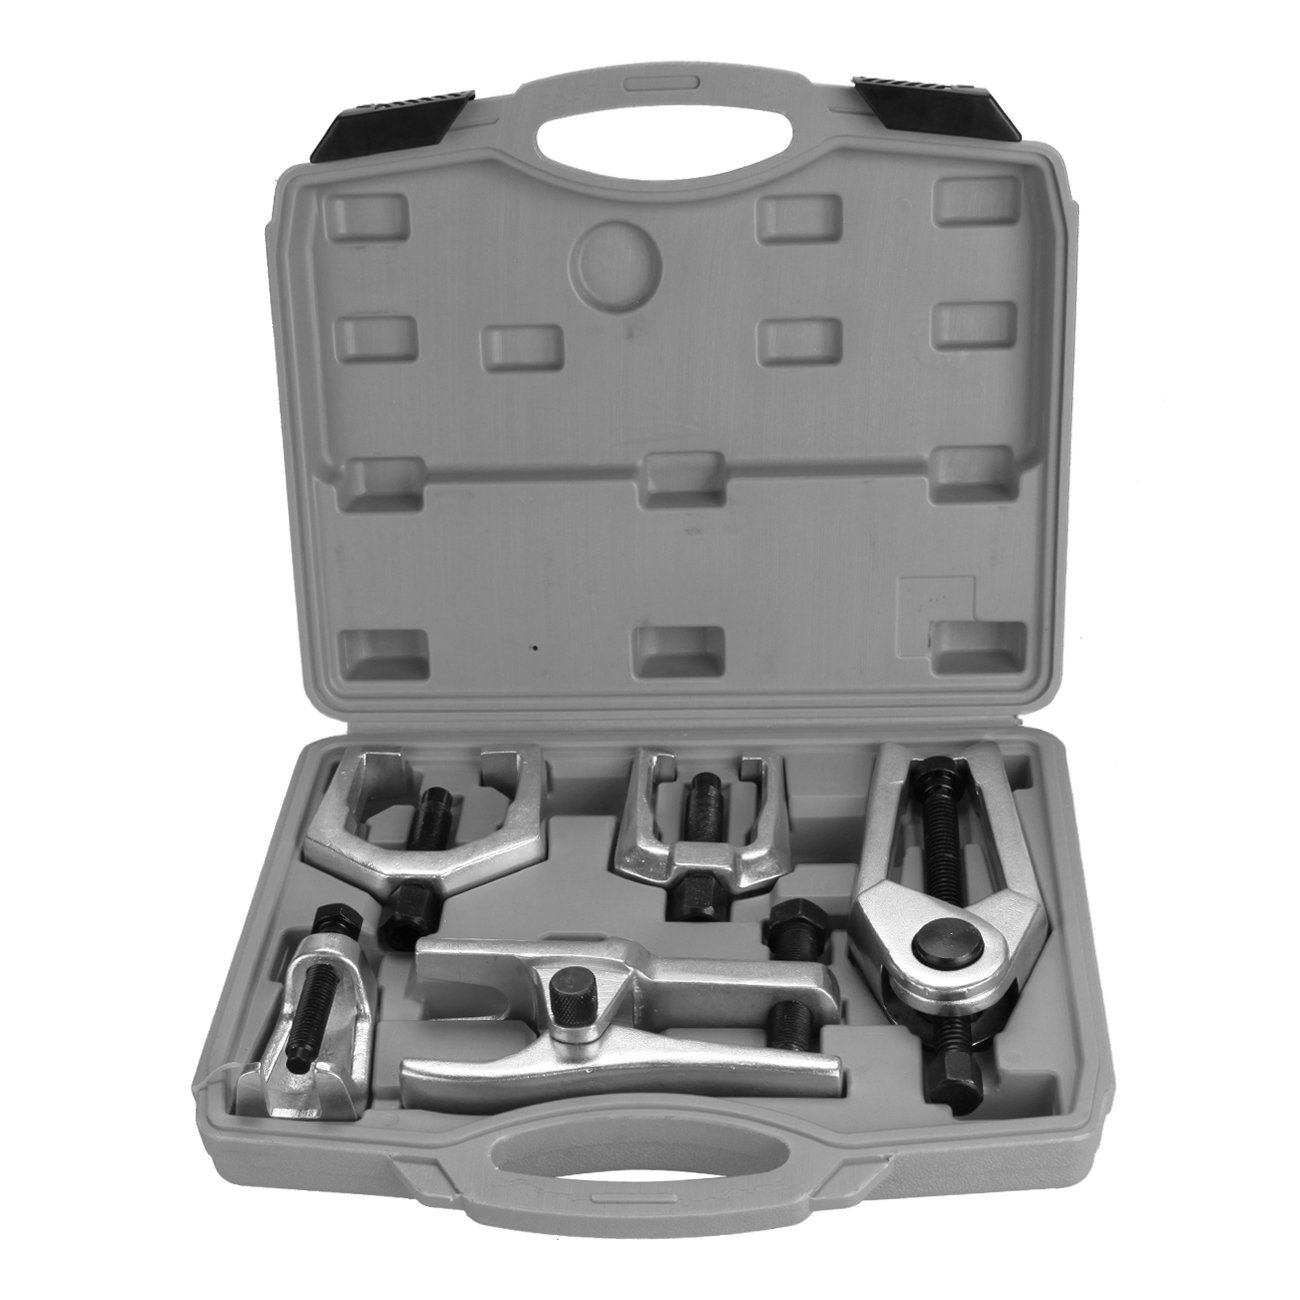 Red Ambienceo 5PCS Front End Remover Tool Kit Ball Joint Separator Pitman Arm Tie Rod Puller with Carring Case